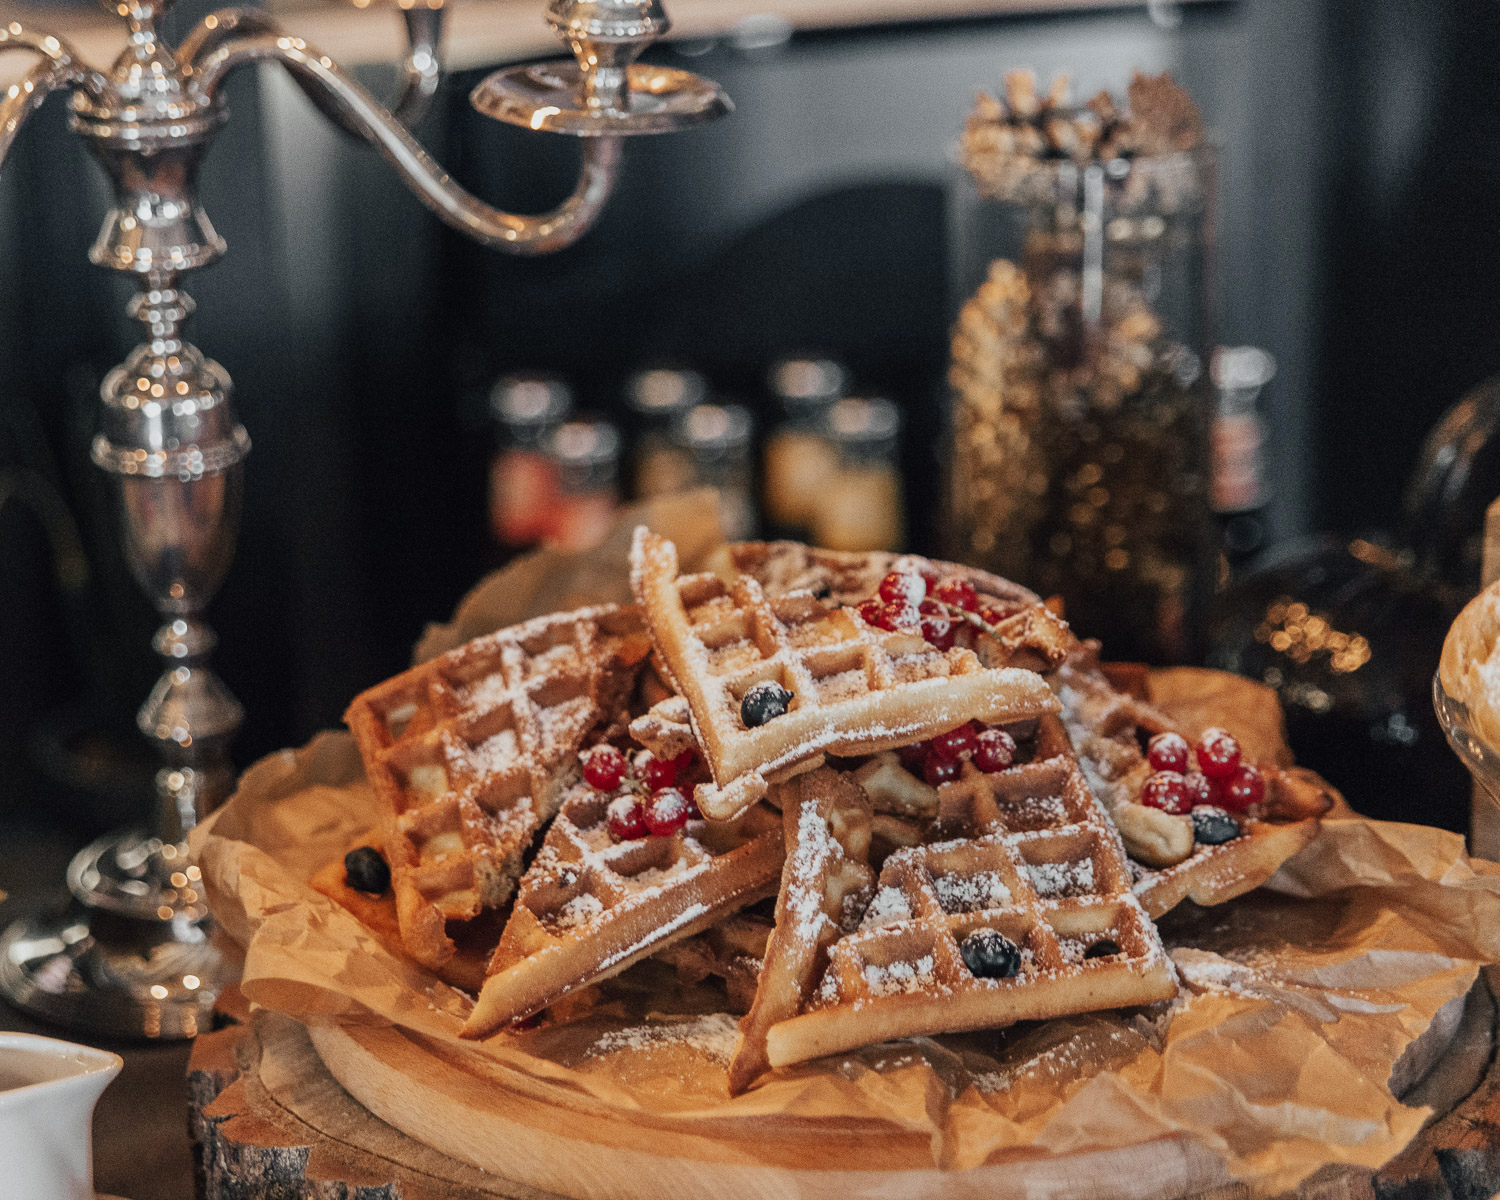 Belgian Waffles at Brunch Buffet at Annas Dārzs, Riga